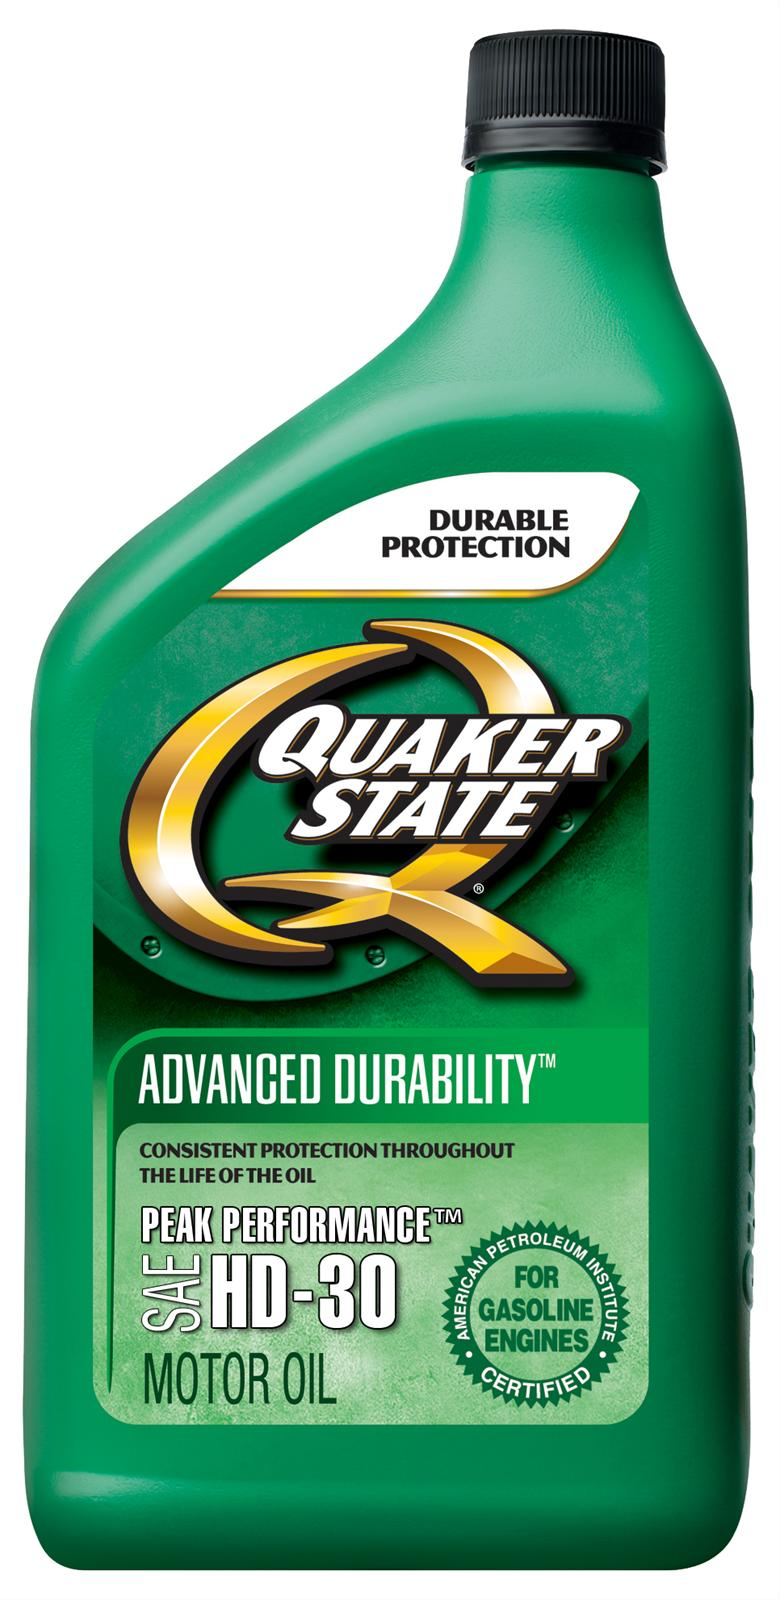 Quaker State Hd 30 4 Cycle Motor Oil 550035190 Free